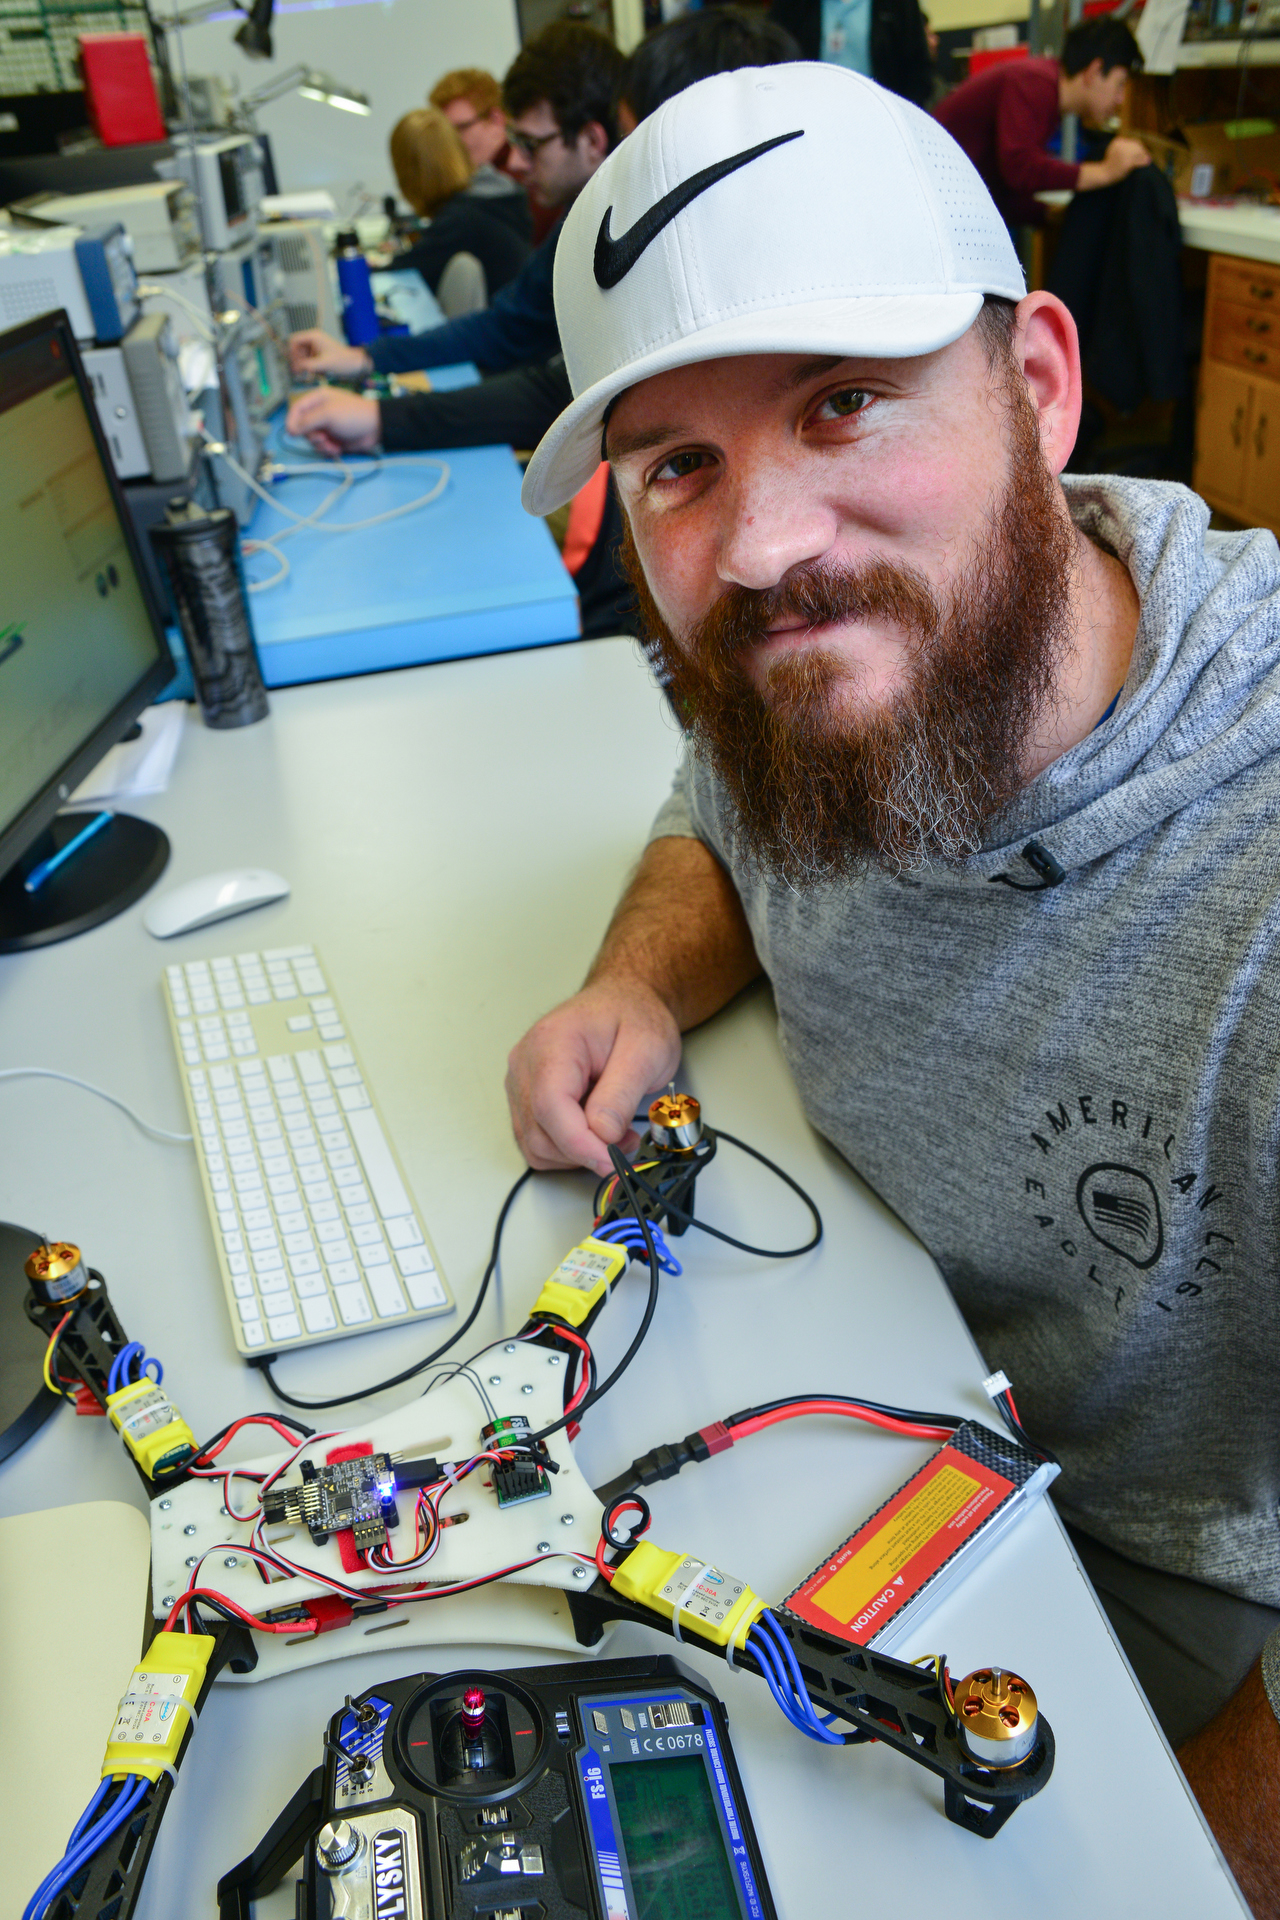 Electrical Engineering student works on a drone.